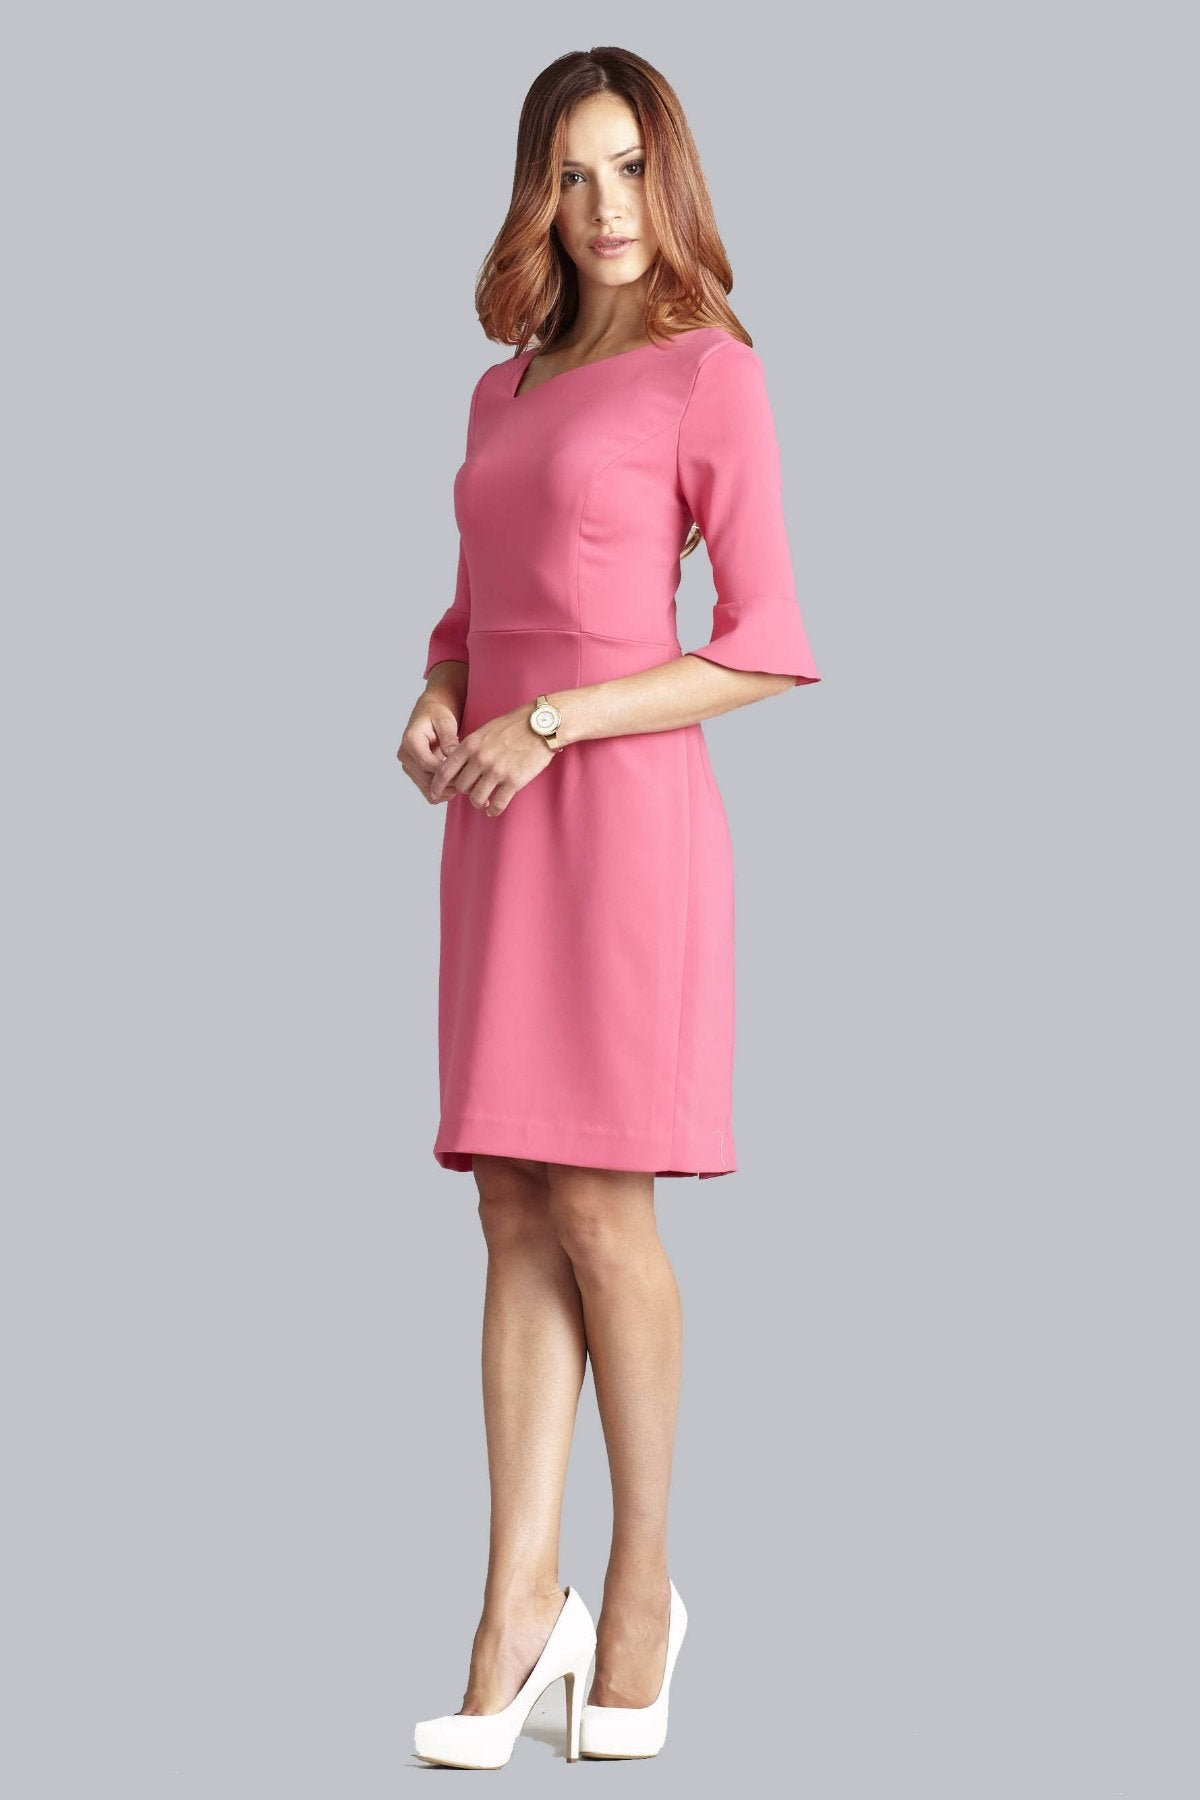 Kate Bell Sleeve Dress - Raspberry